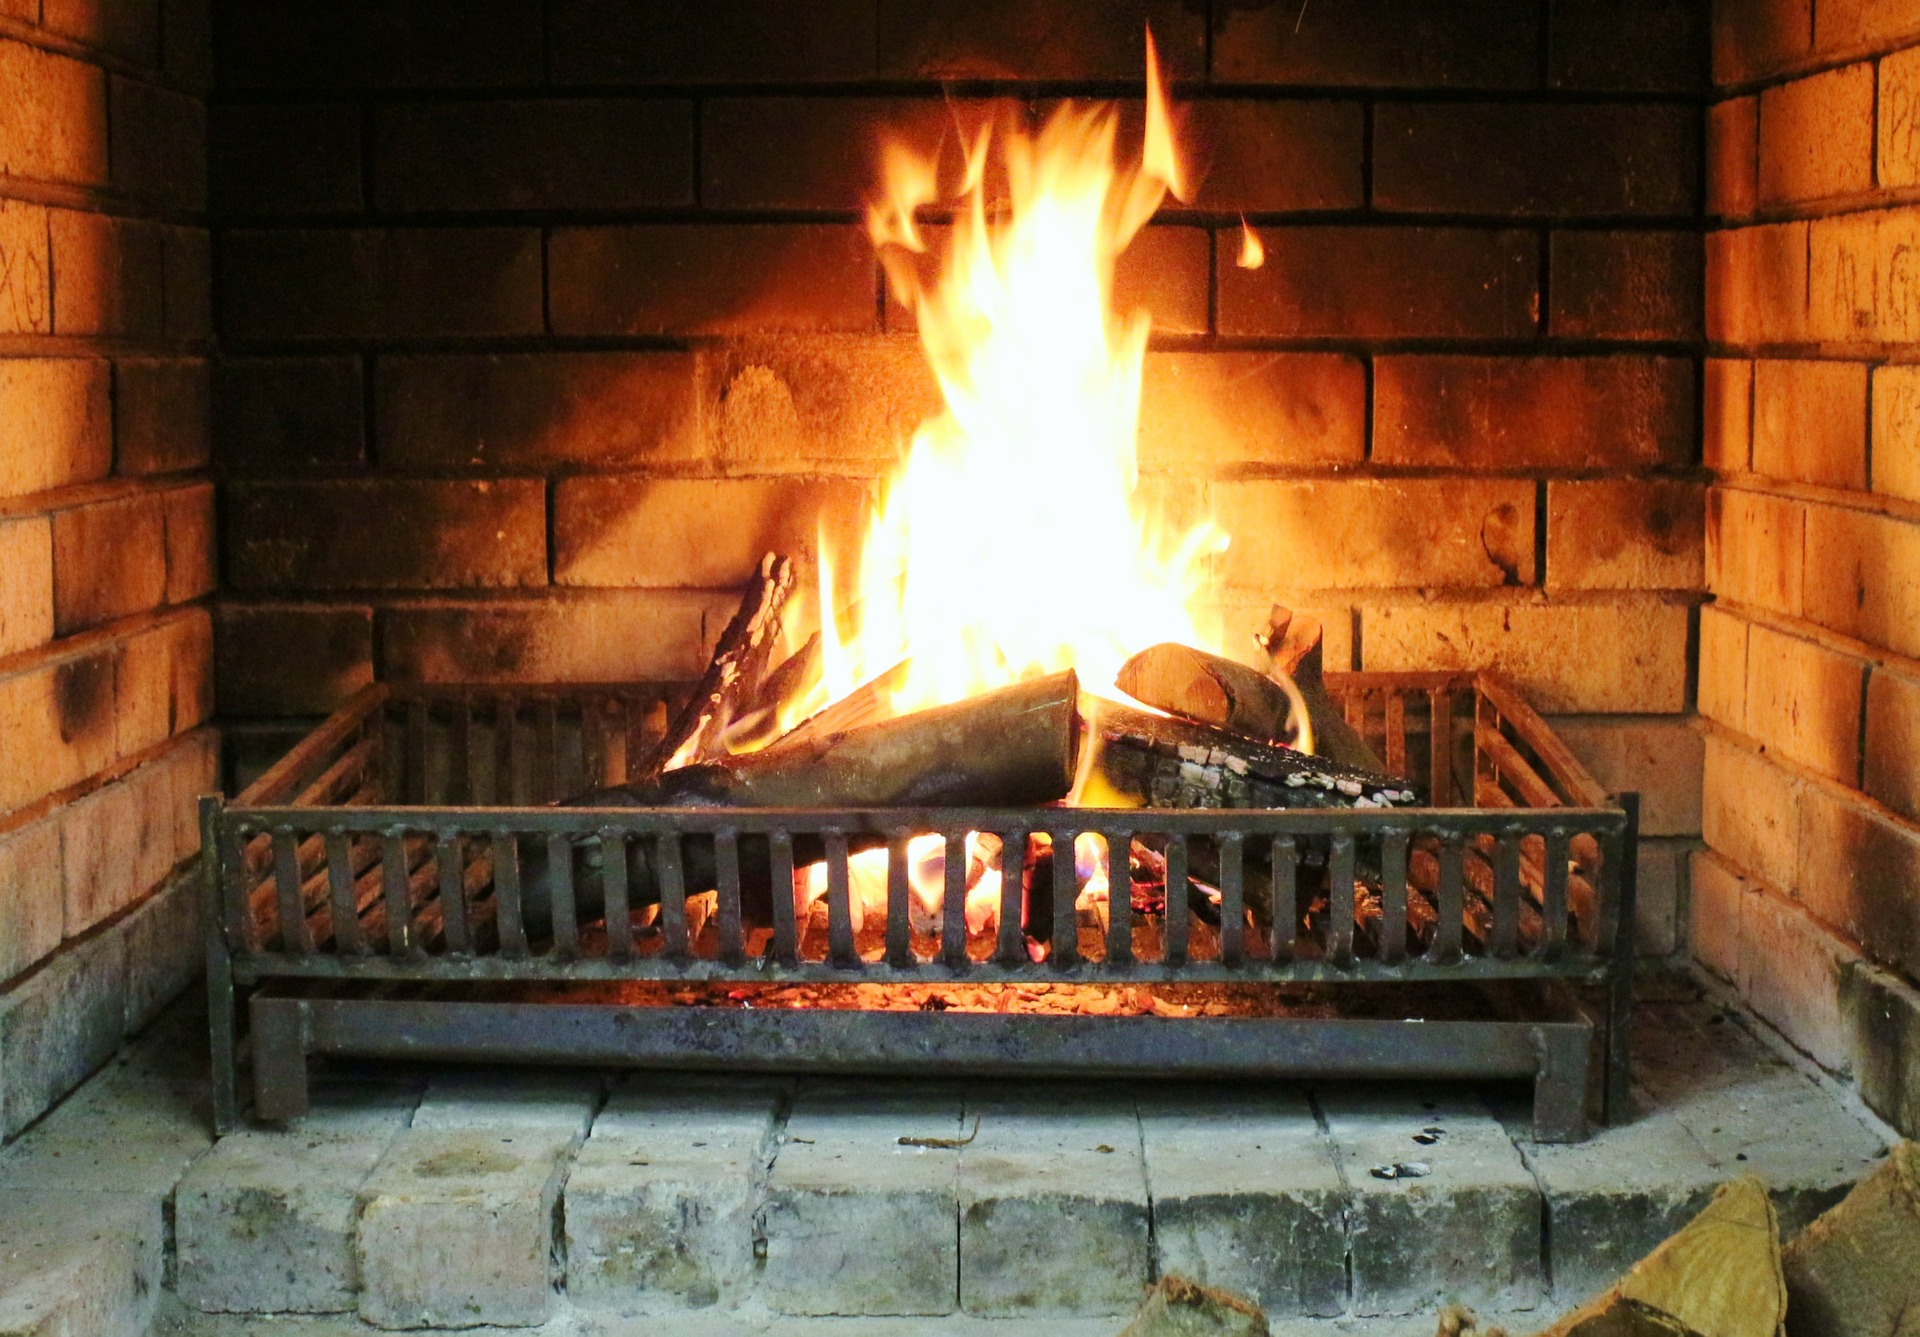 Wisconsin Houses for Sale with Fireplace 159K to 160K